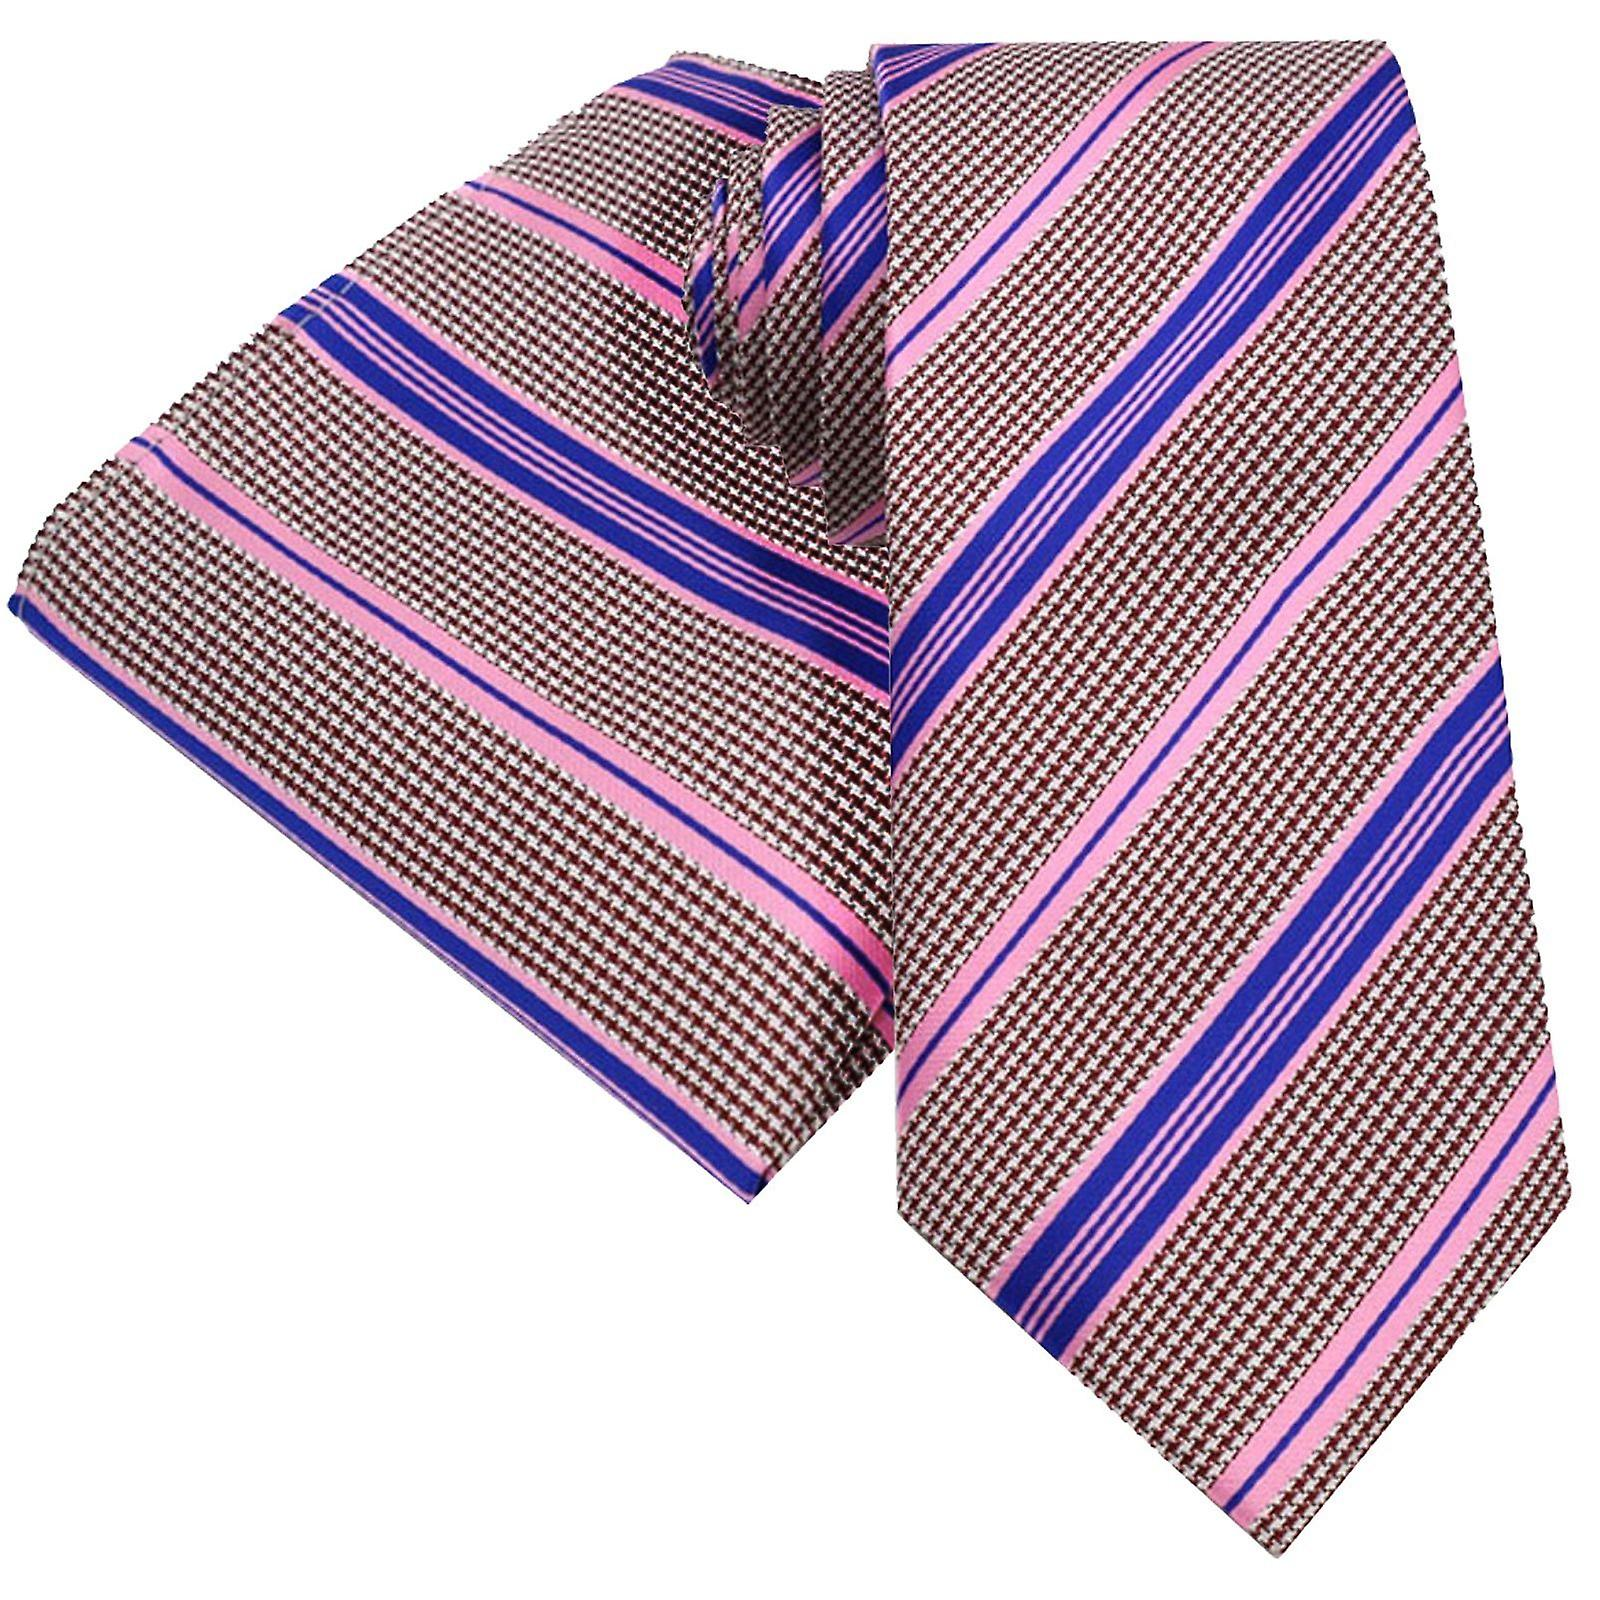 Purple pink & oat dog tooth pattern tie & pocket square